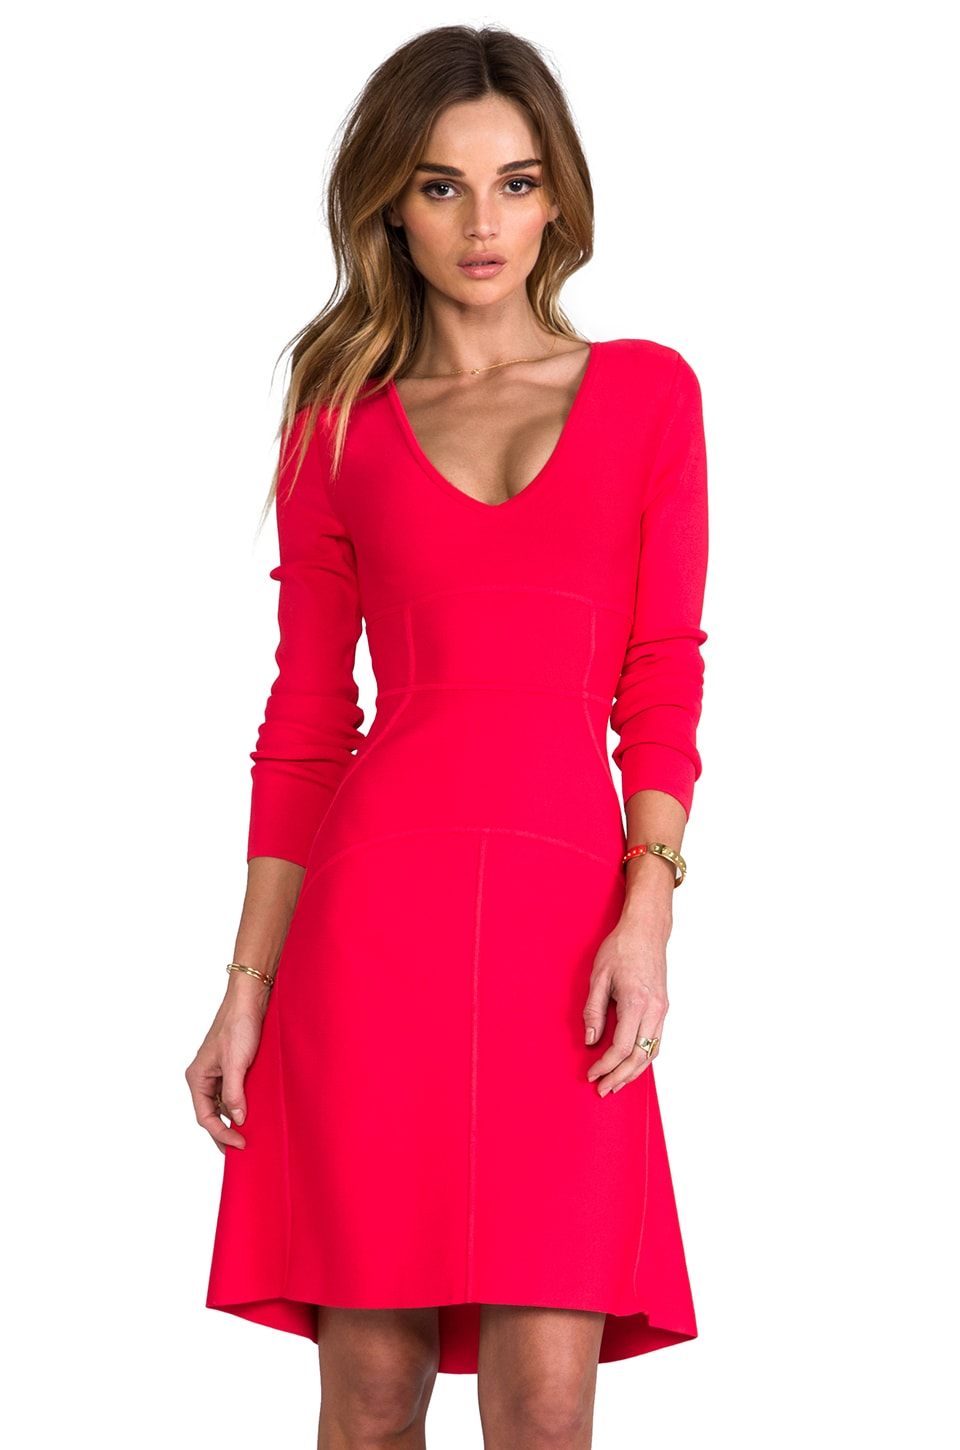 BCBGMAXAZRIA Sydney Dress in Red Berry